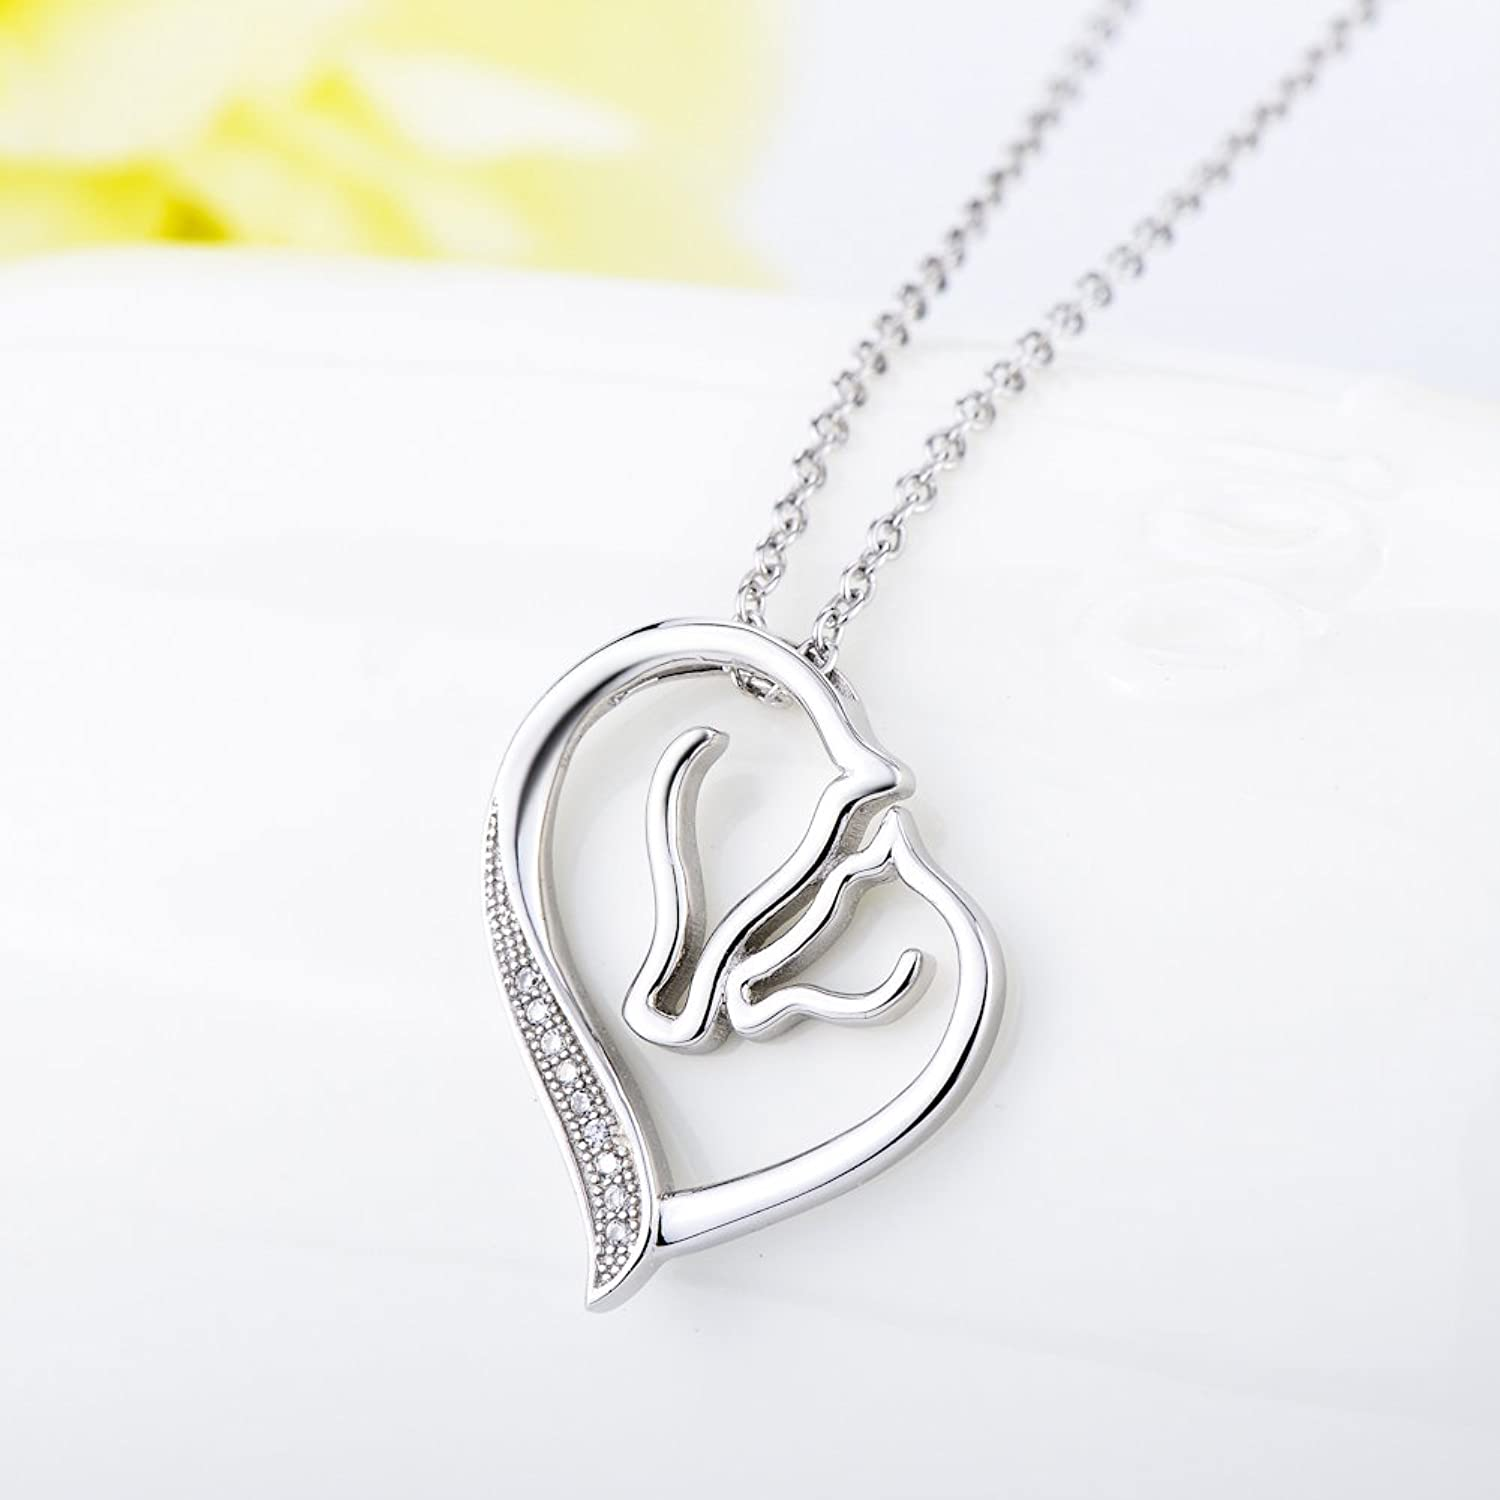 cut coin lovers friend products best jewellery equestrian necklaces horse hand jewelry